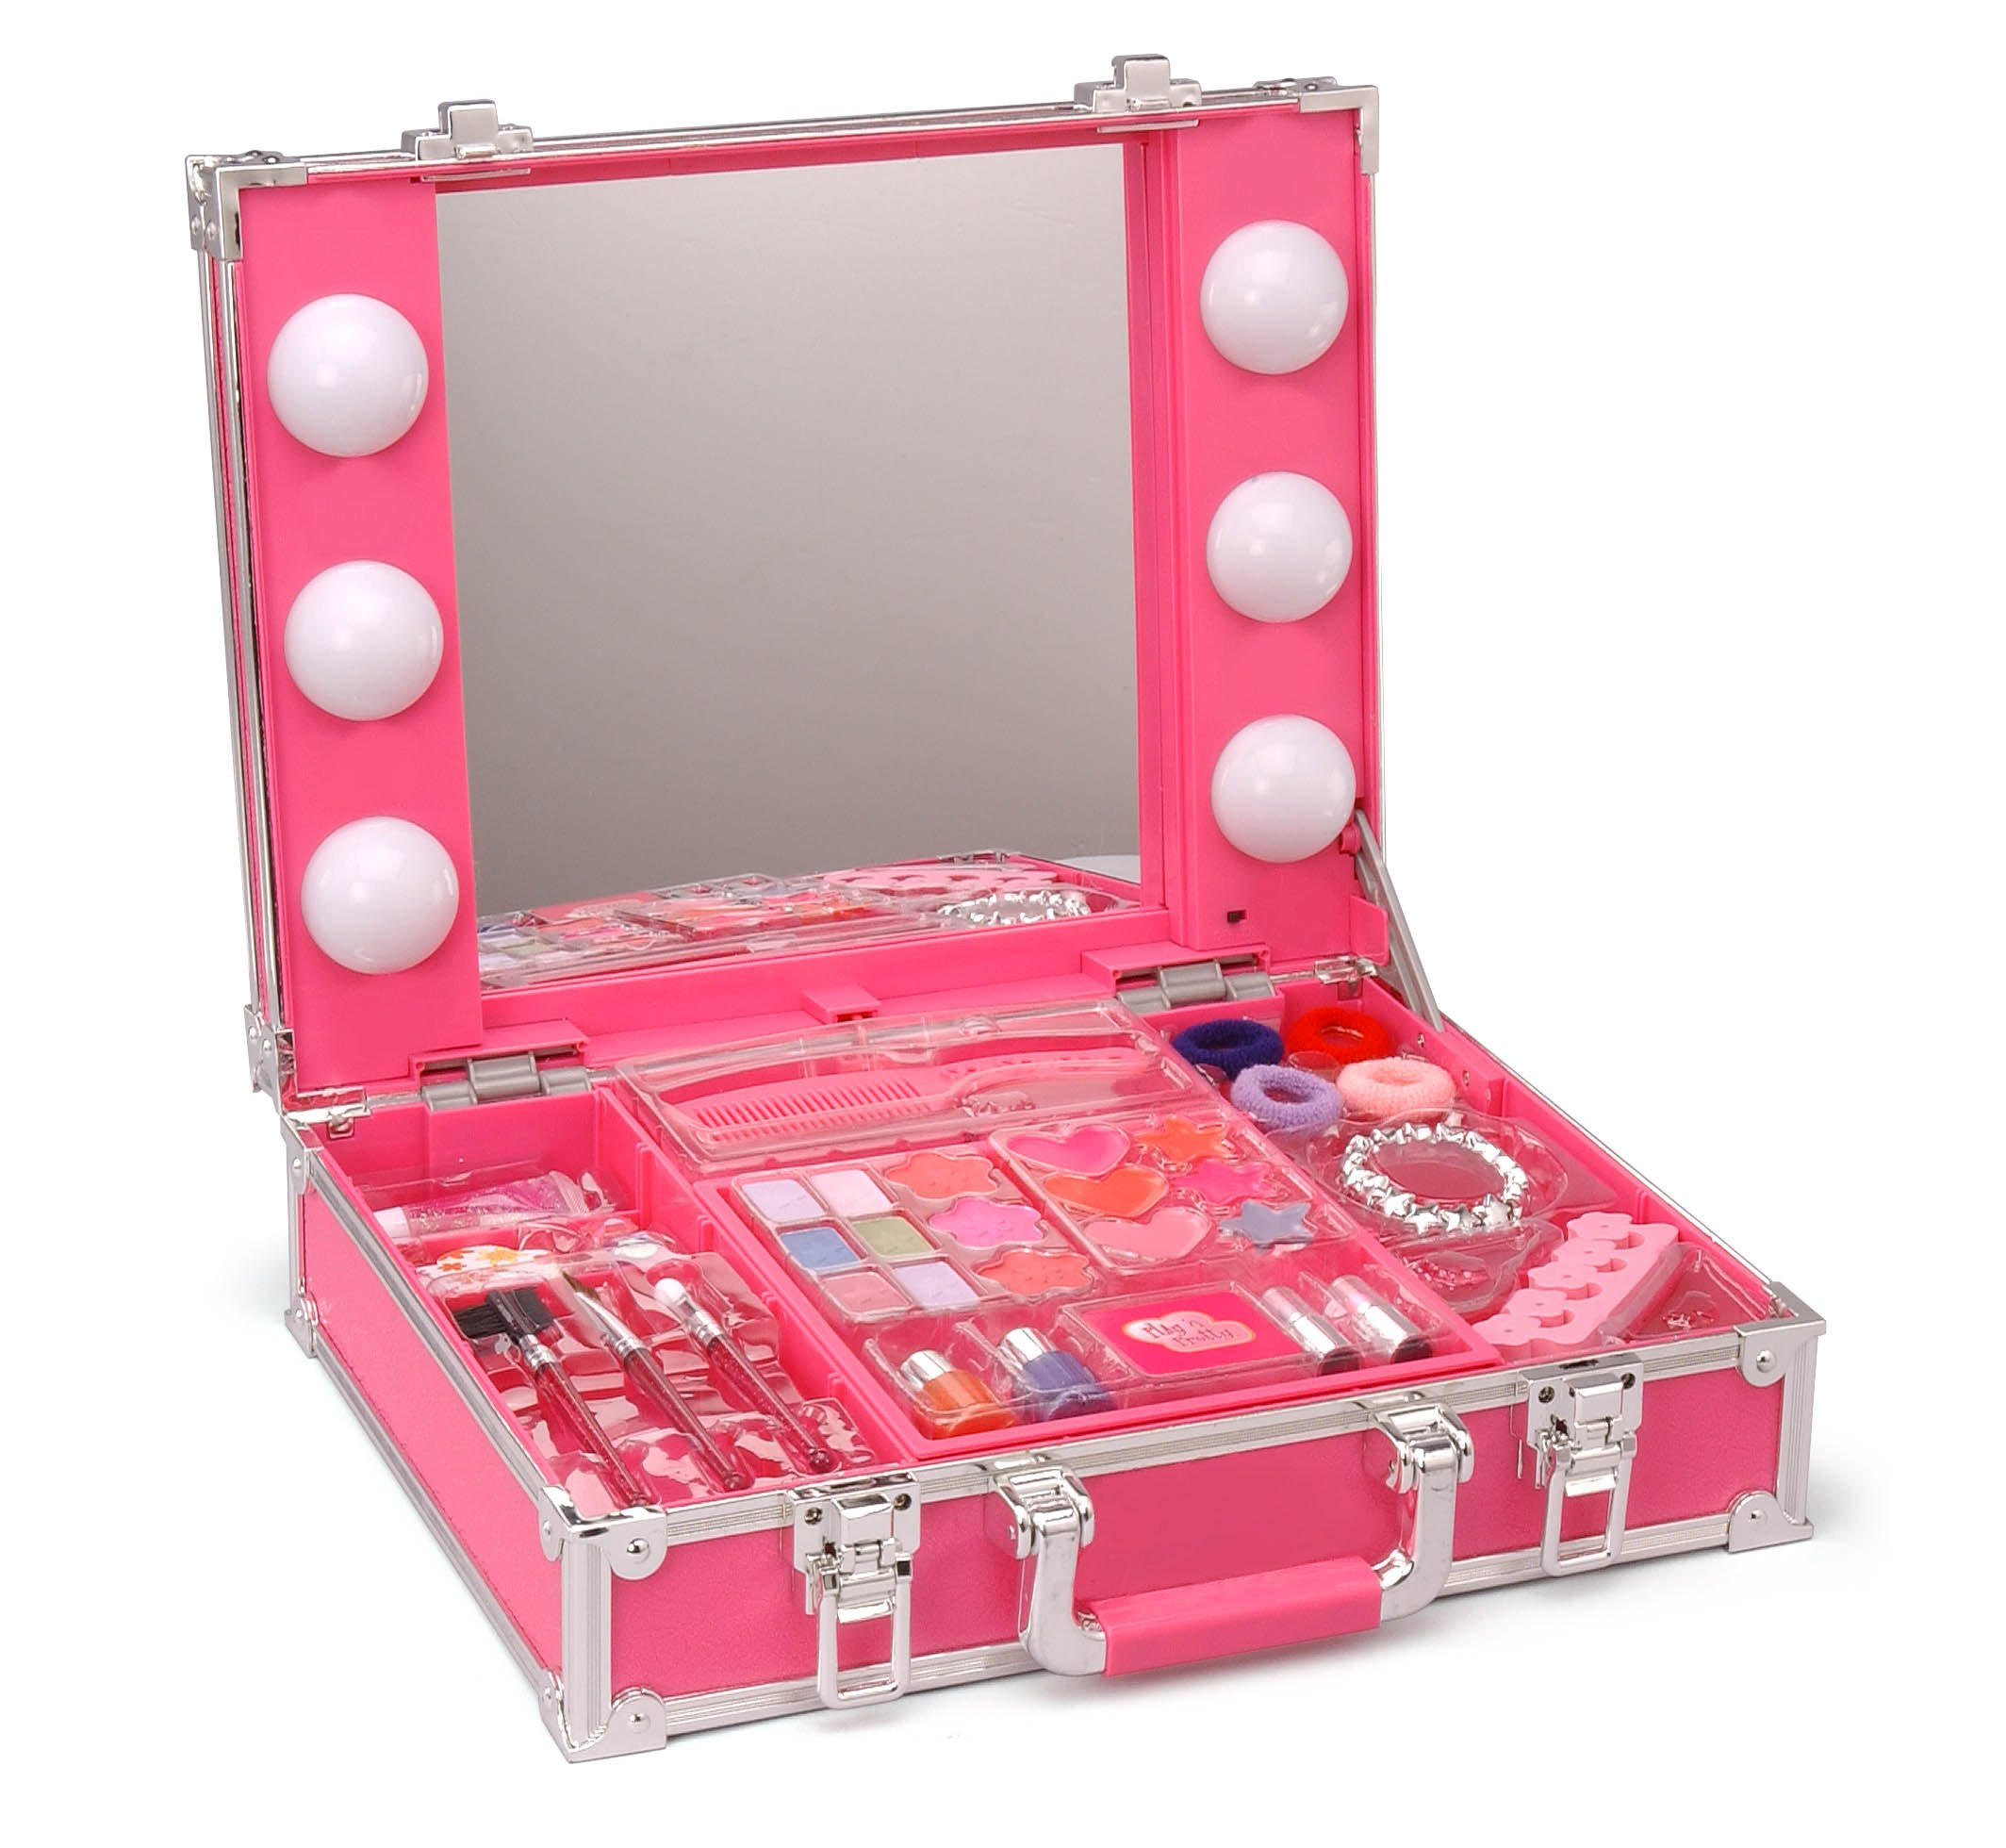 New Beauty Star Station Lighted Vanity Mirror Set Kit for ...